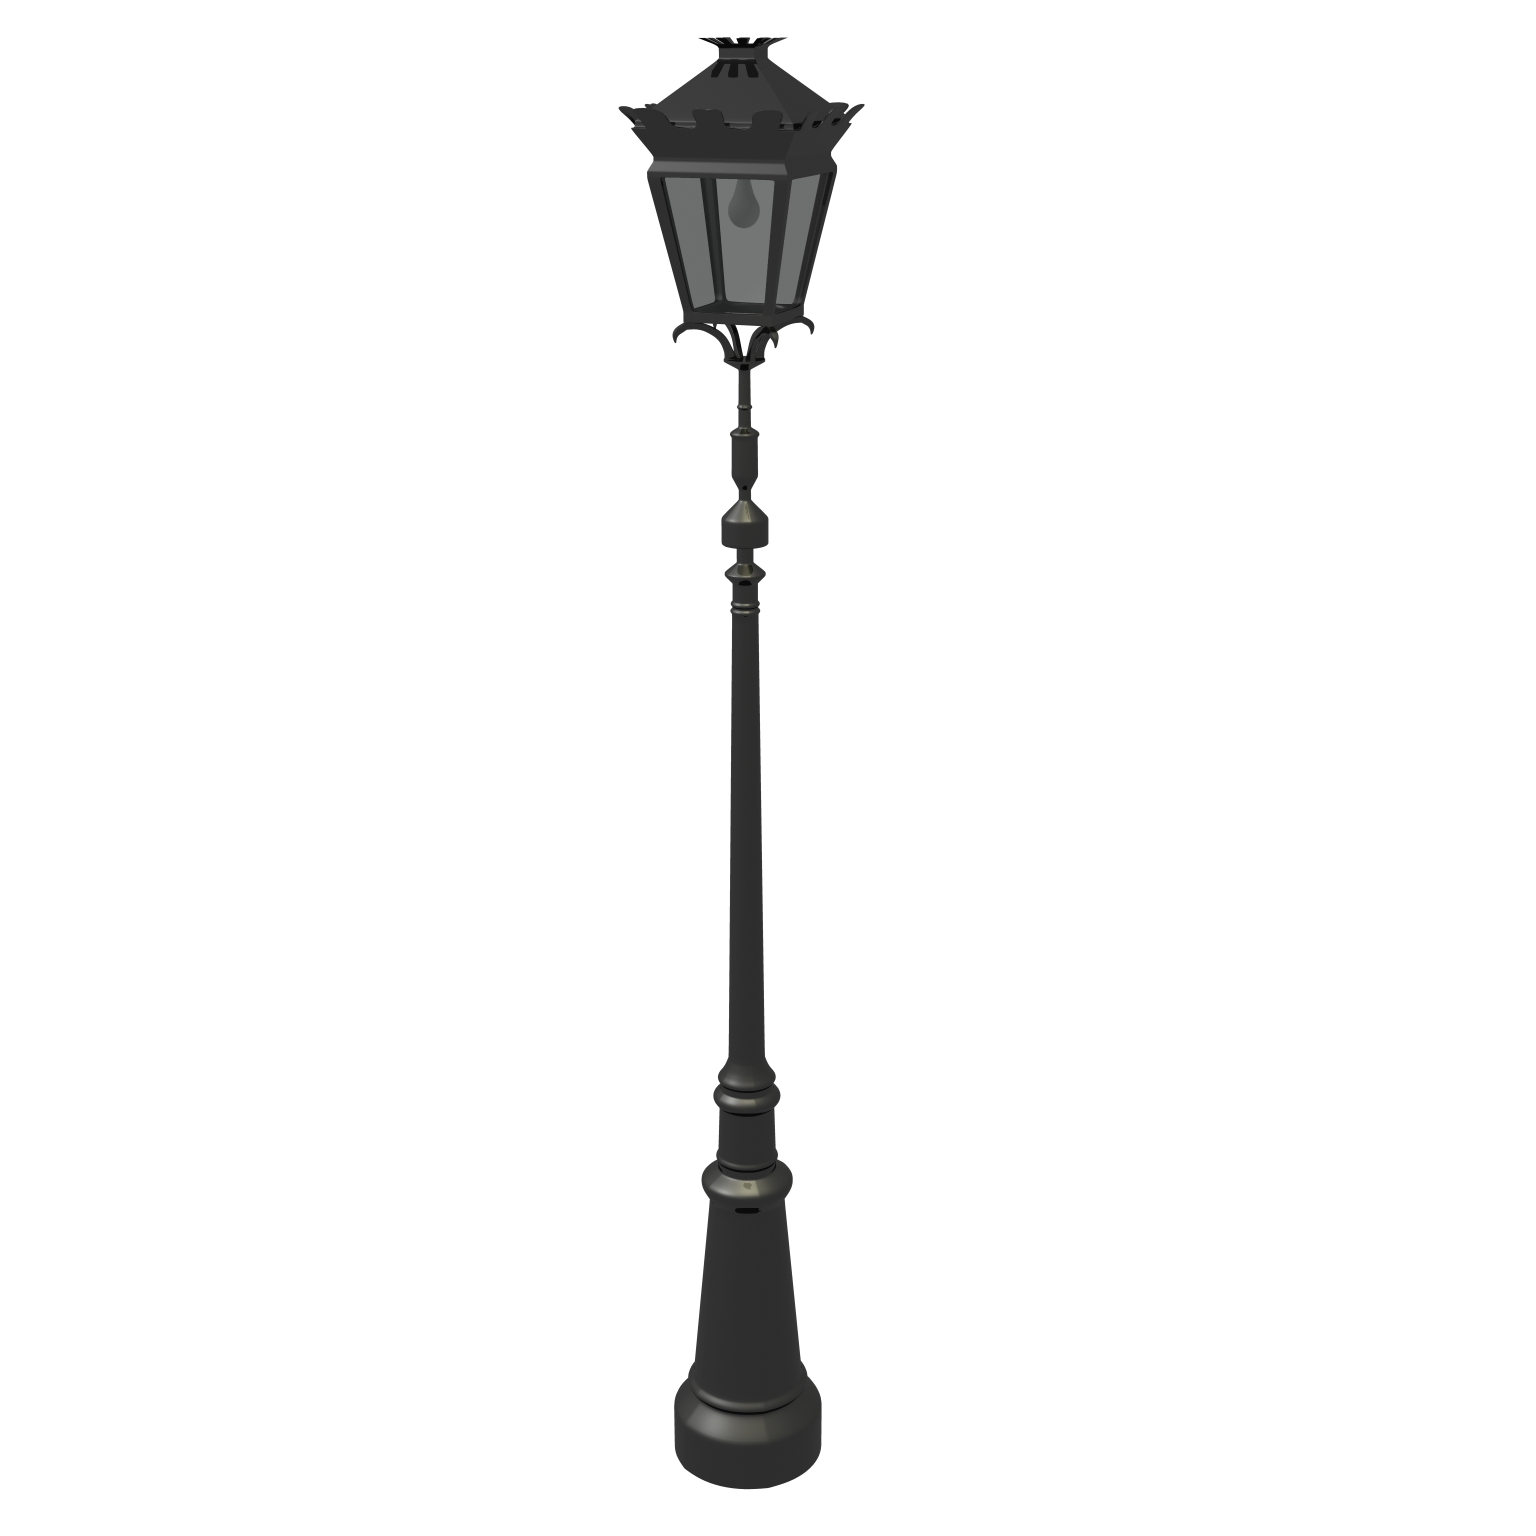 Street Lamp 3D Model – Buy Street Lamp 3D Model | FlatPyramid